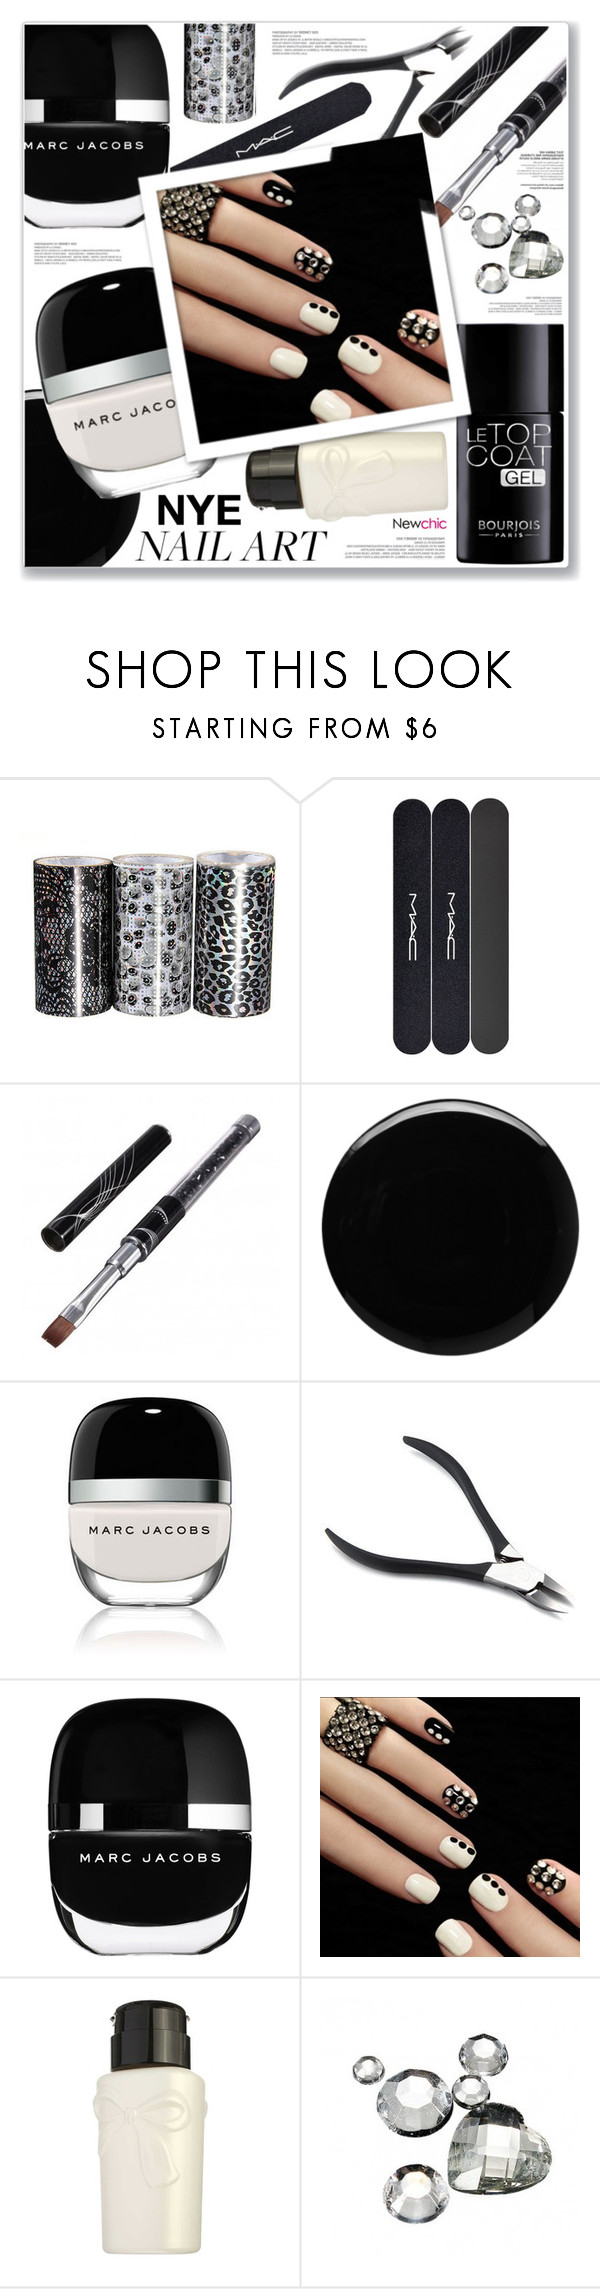 """""""NEWCHIC"""" by nanawidia ❤ liked on Polyvore featuring beauty, MAC Cosmetics, Deborah Lippmann, Marc Jacobs, Bourjois, polyvoreeditorial, beautyset, newchic and Holidaygifts"""